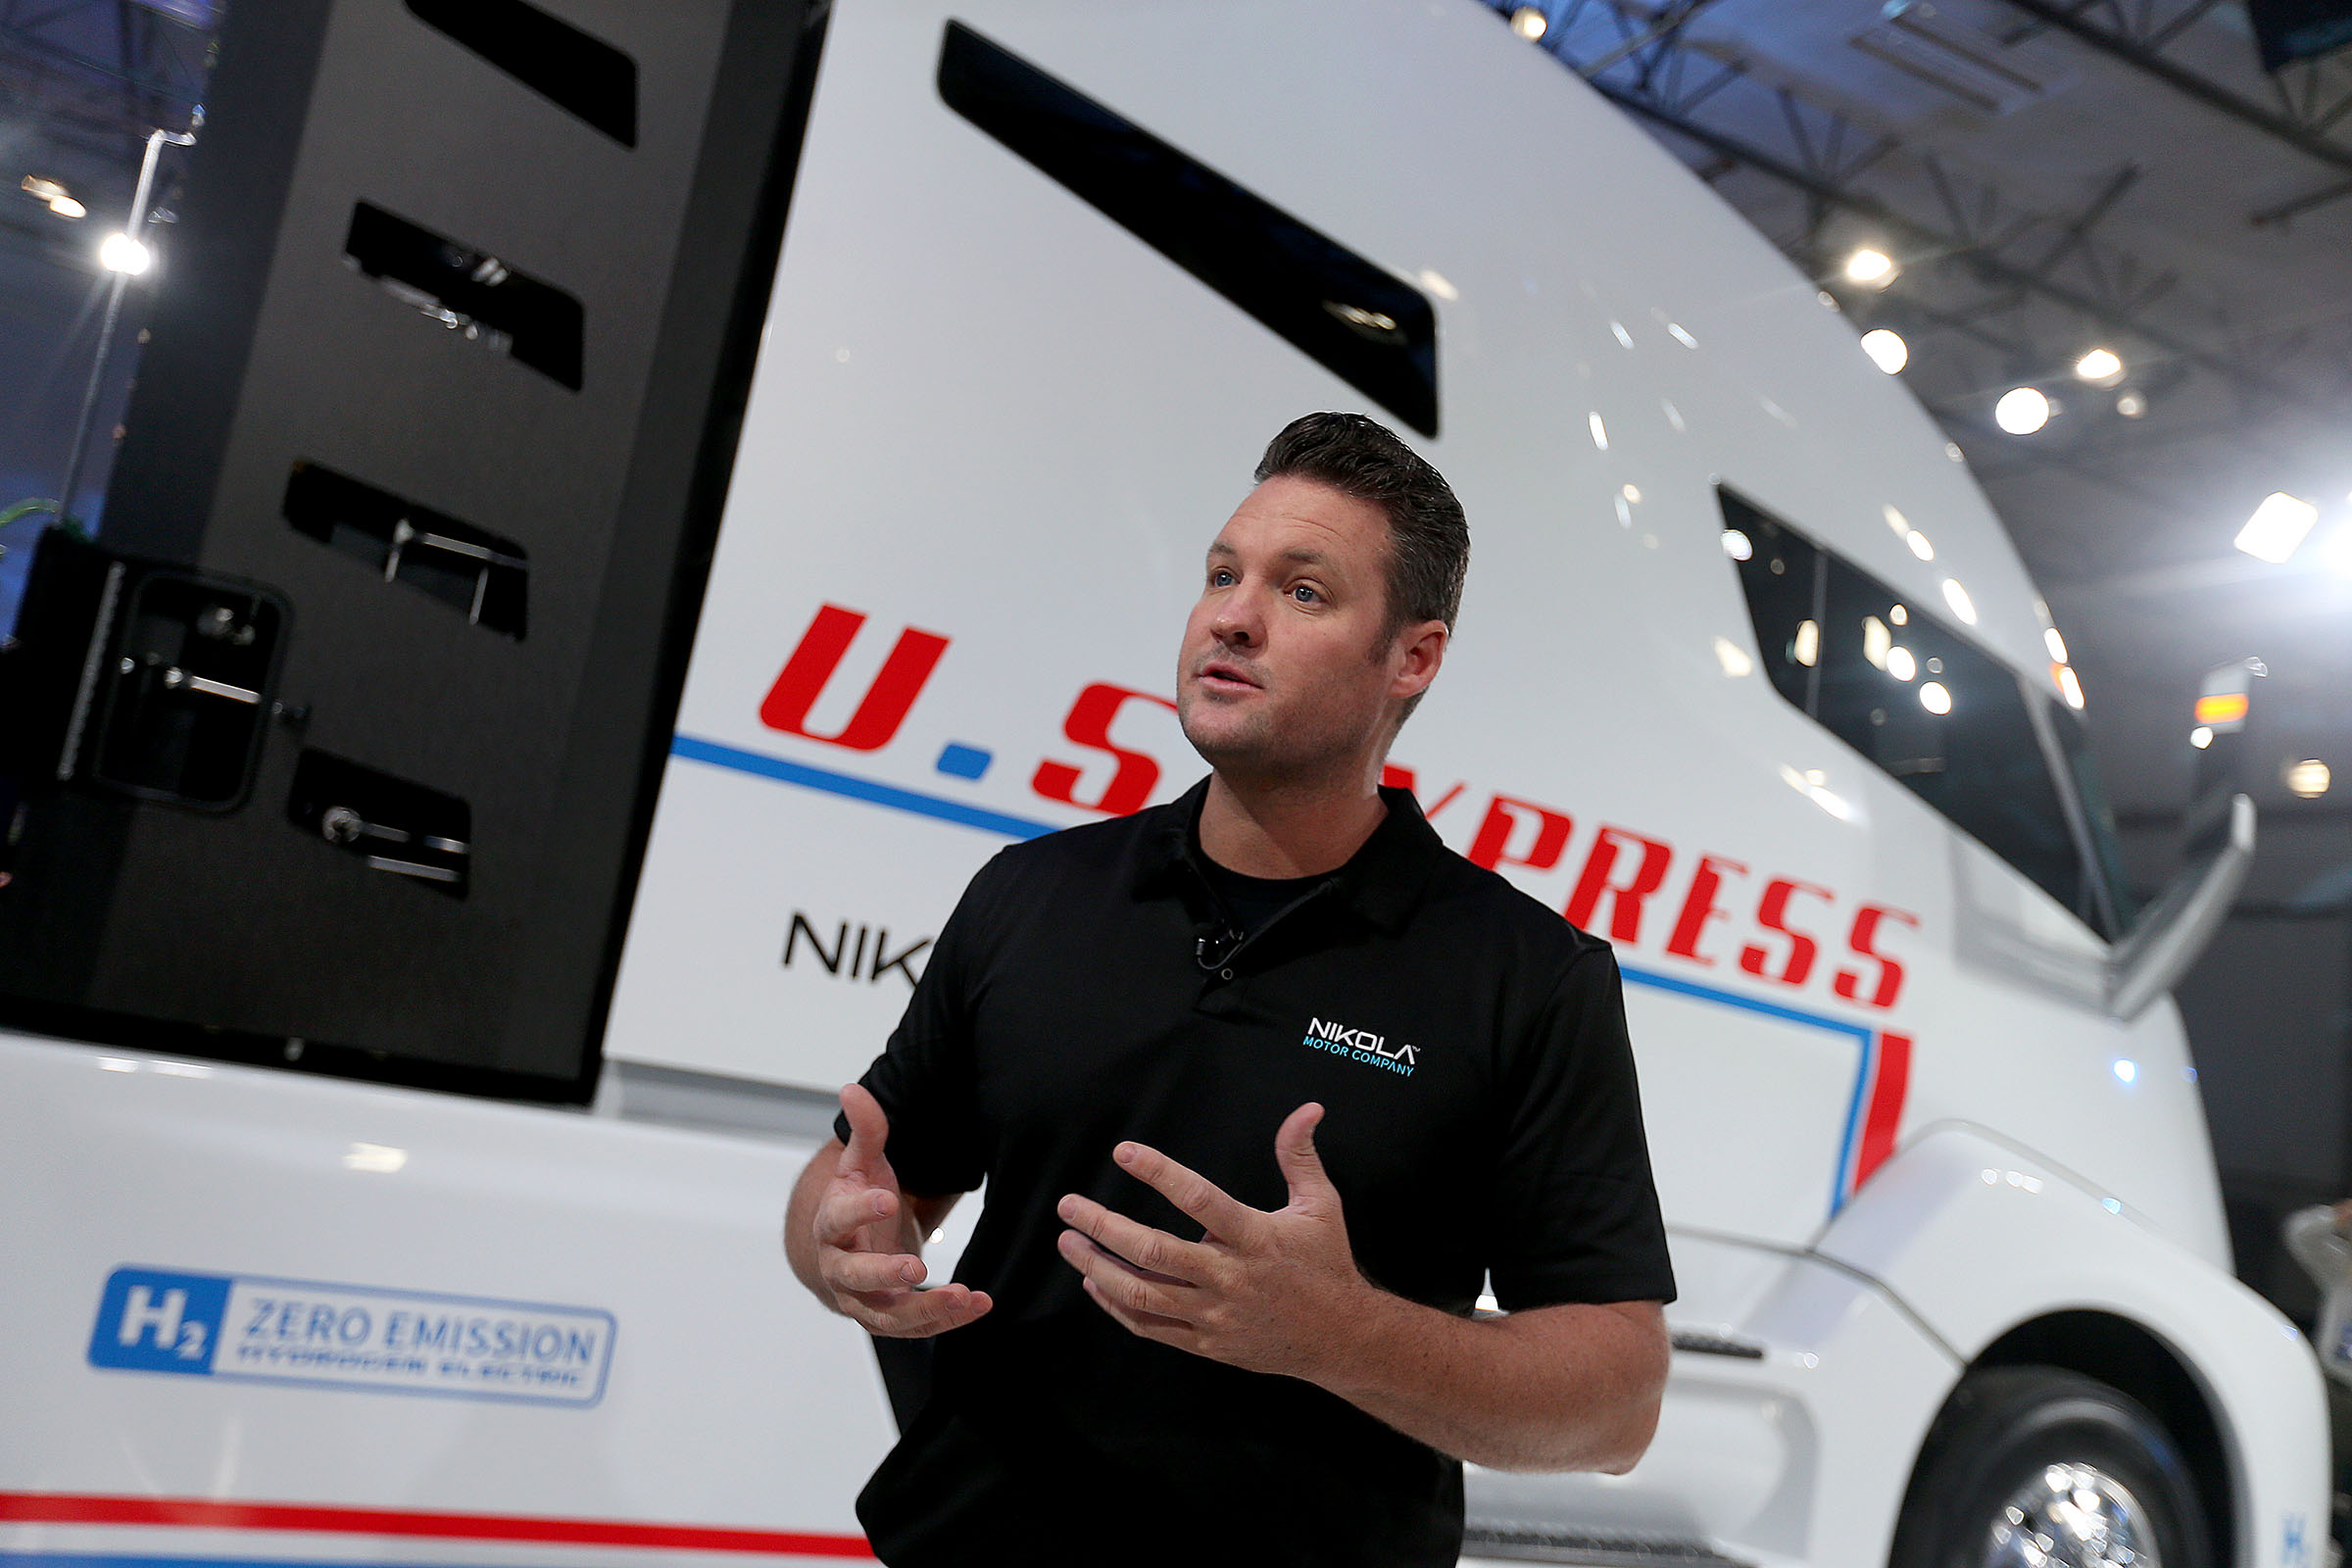 Trevor Milton, Nikola's CEO, talks about the Nikola One electric semitrailer at Nikola World headquarters in Salt Lake City on Friday, Dec. 2, 2016. The prototype Nikola One is expected to be the most fuel efficient class 8 truck ever built.